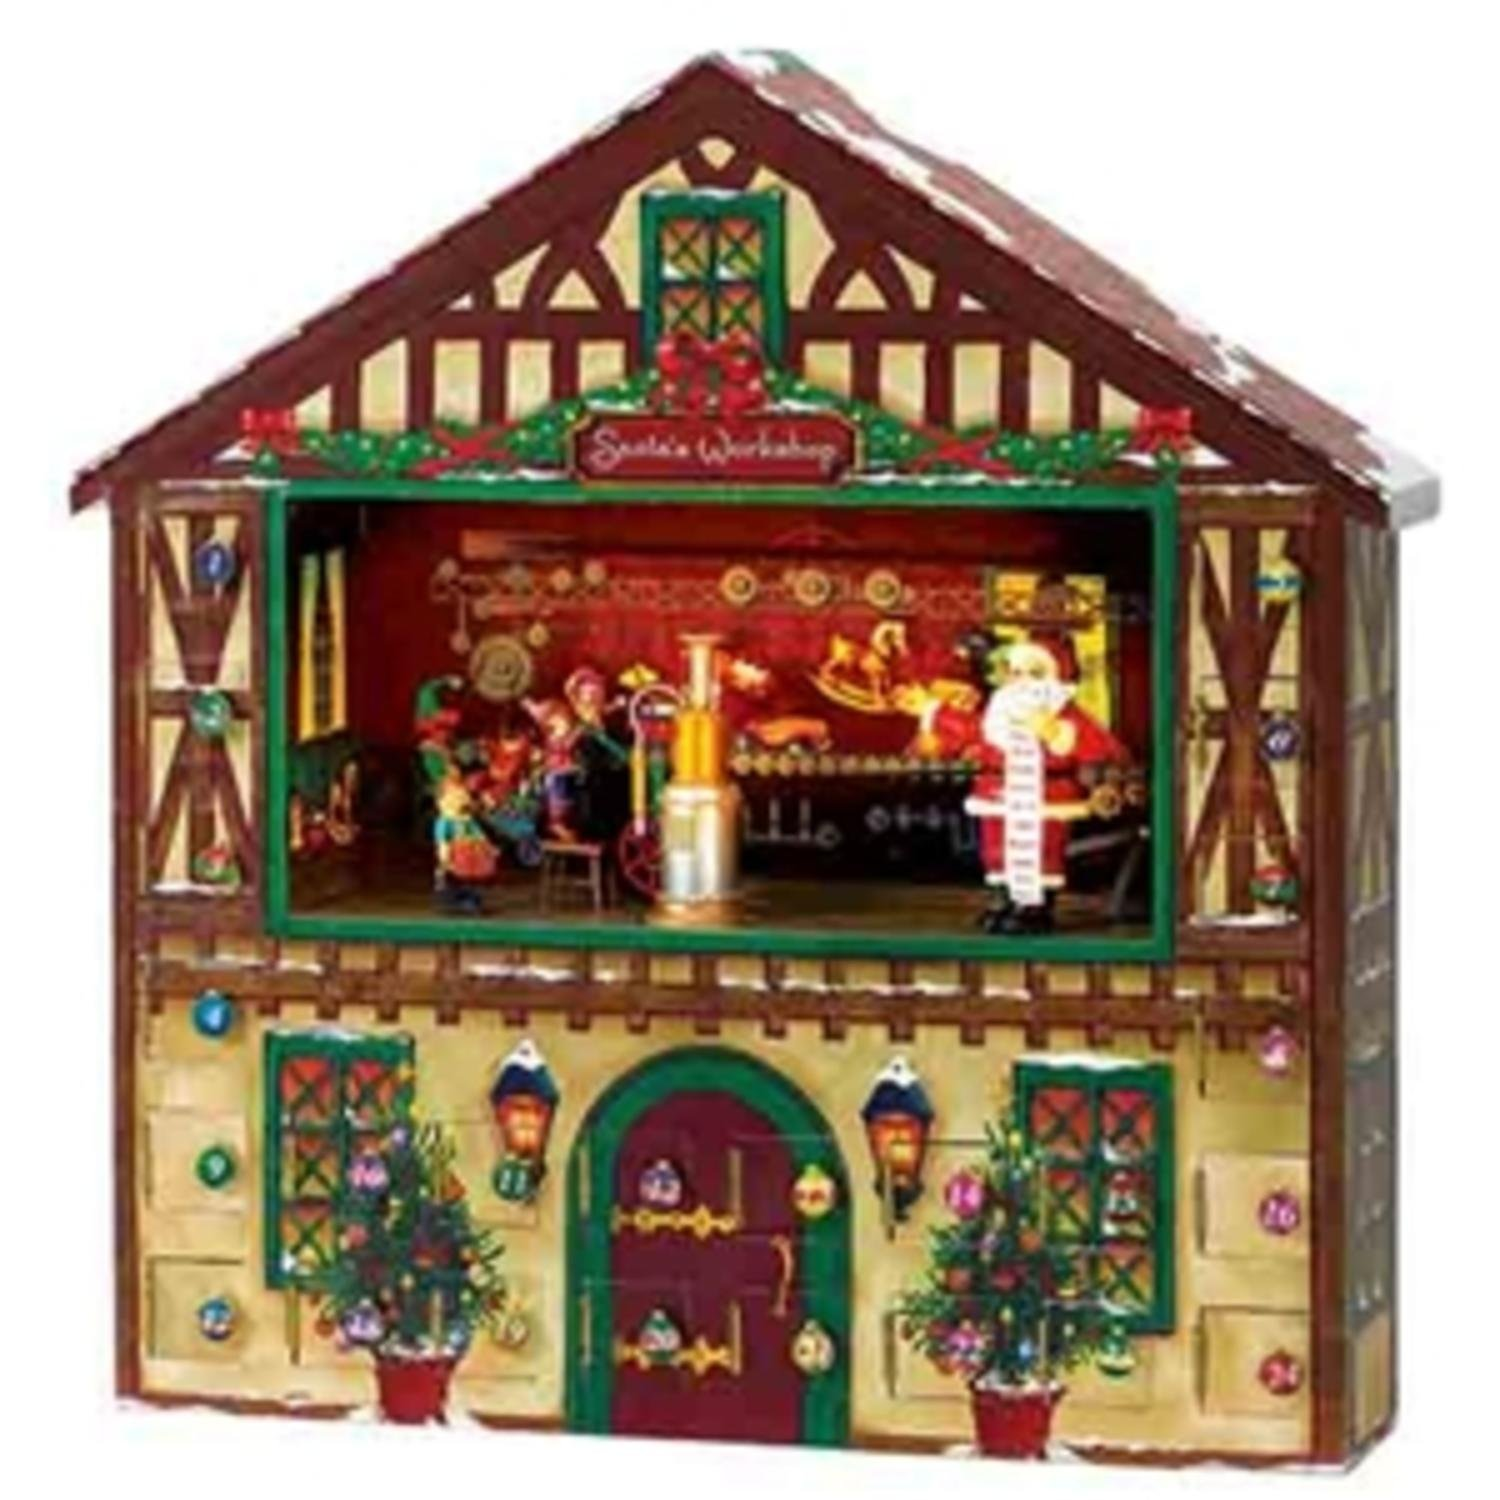 Mr. Christmas Animated & Musical Santa's Workshop Advent Calender House #23963